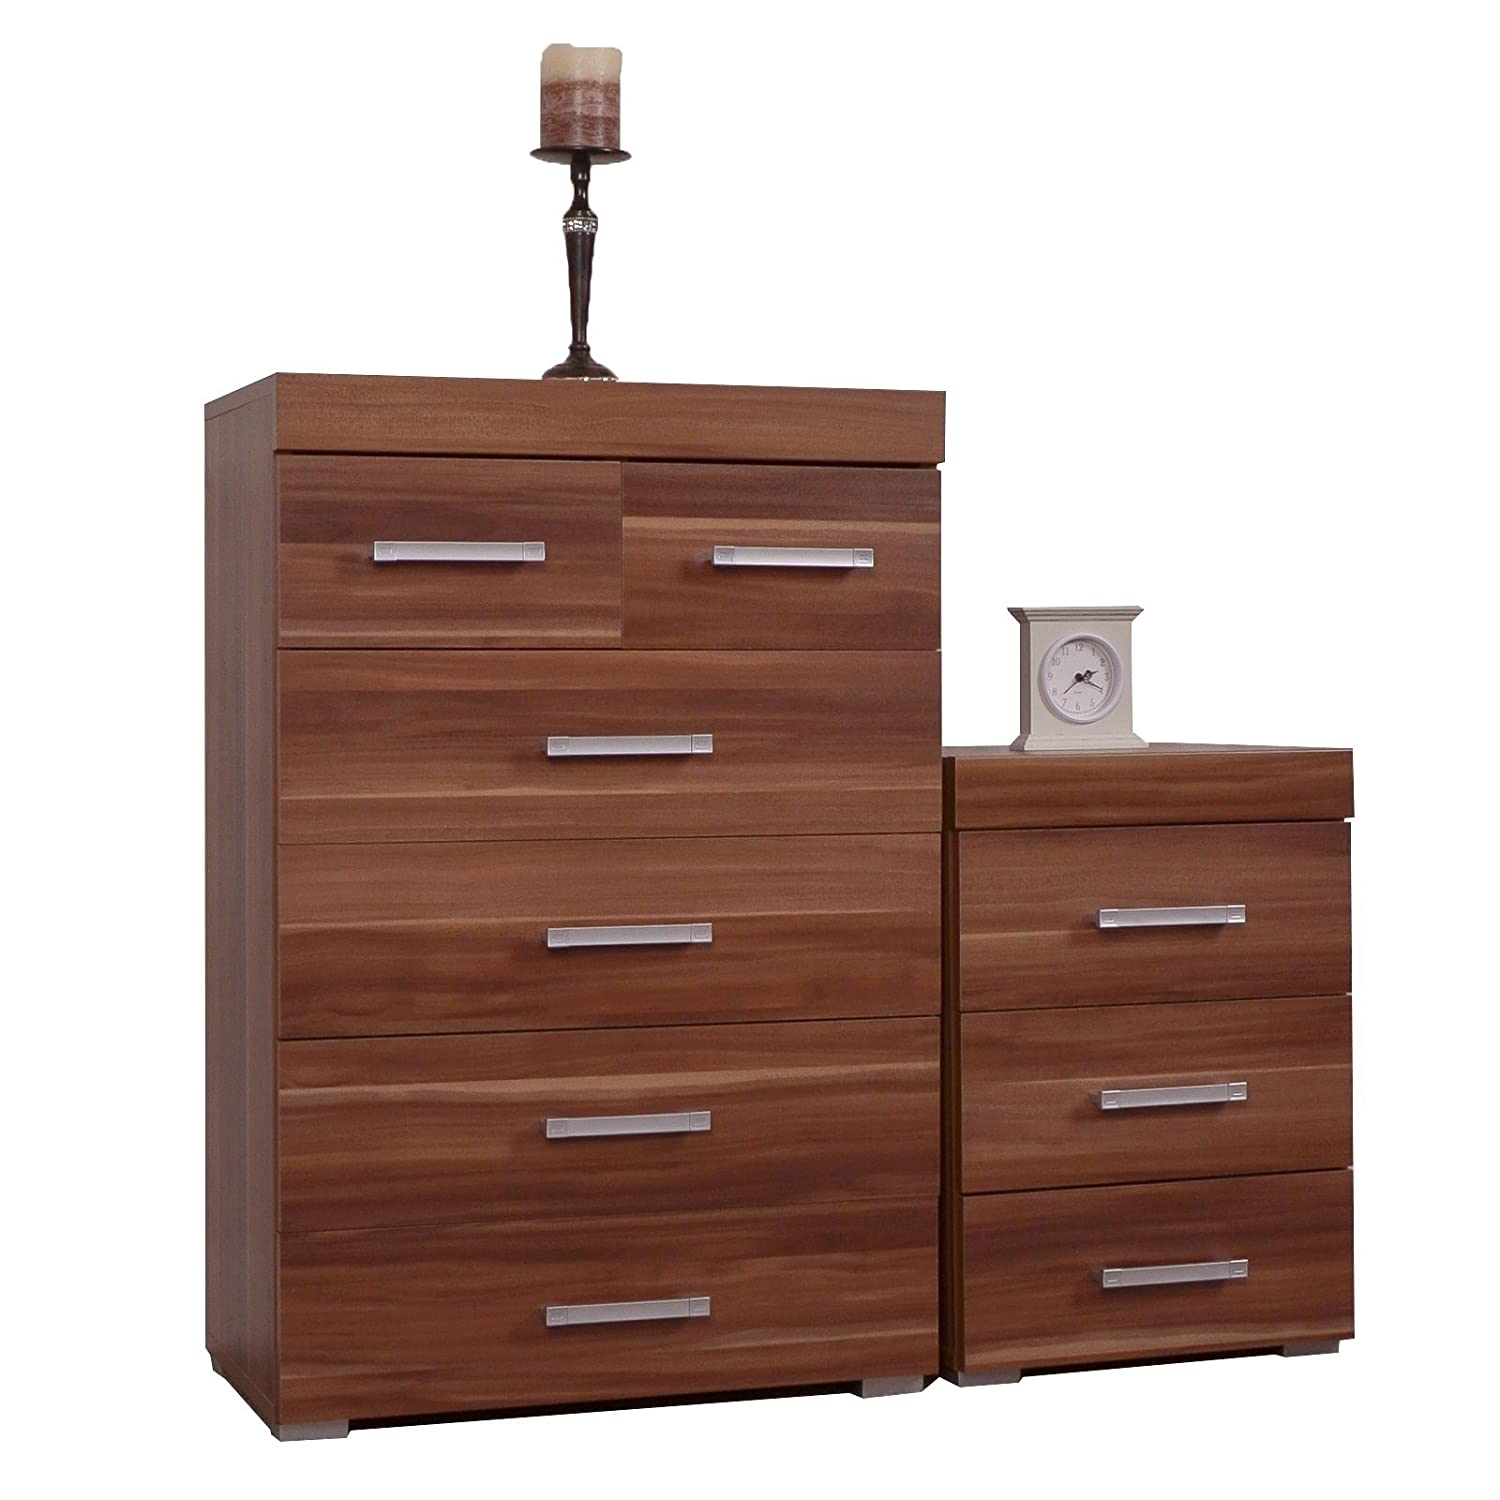 DP Walnut 4+2 Drawer Chest & 3 Draw Bedside Cabinet Bedroom Furniture